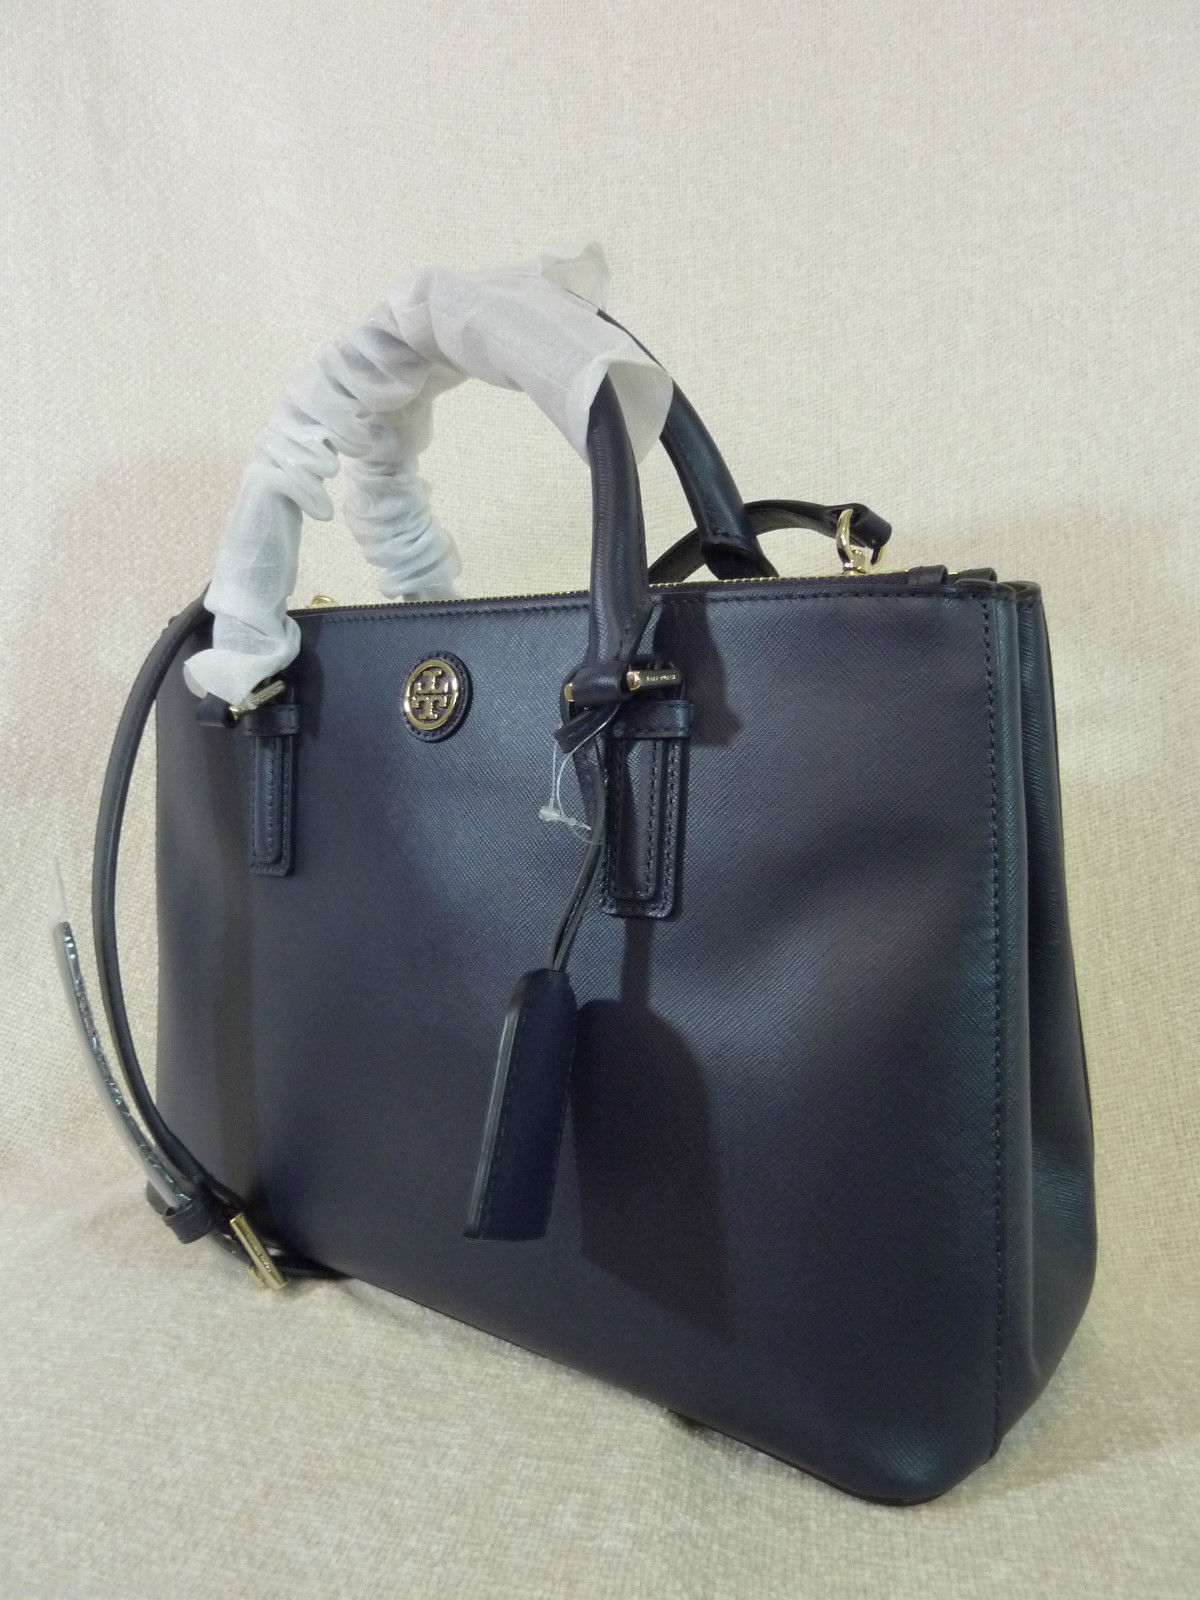 Tory Burch Navy Blue Saffiano Leather Robinson Mini Double-Zip Tote $495 image 6